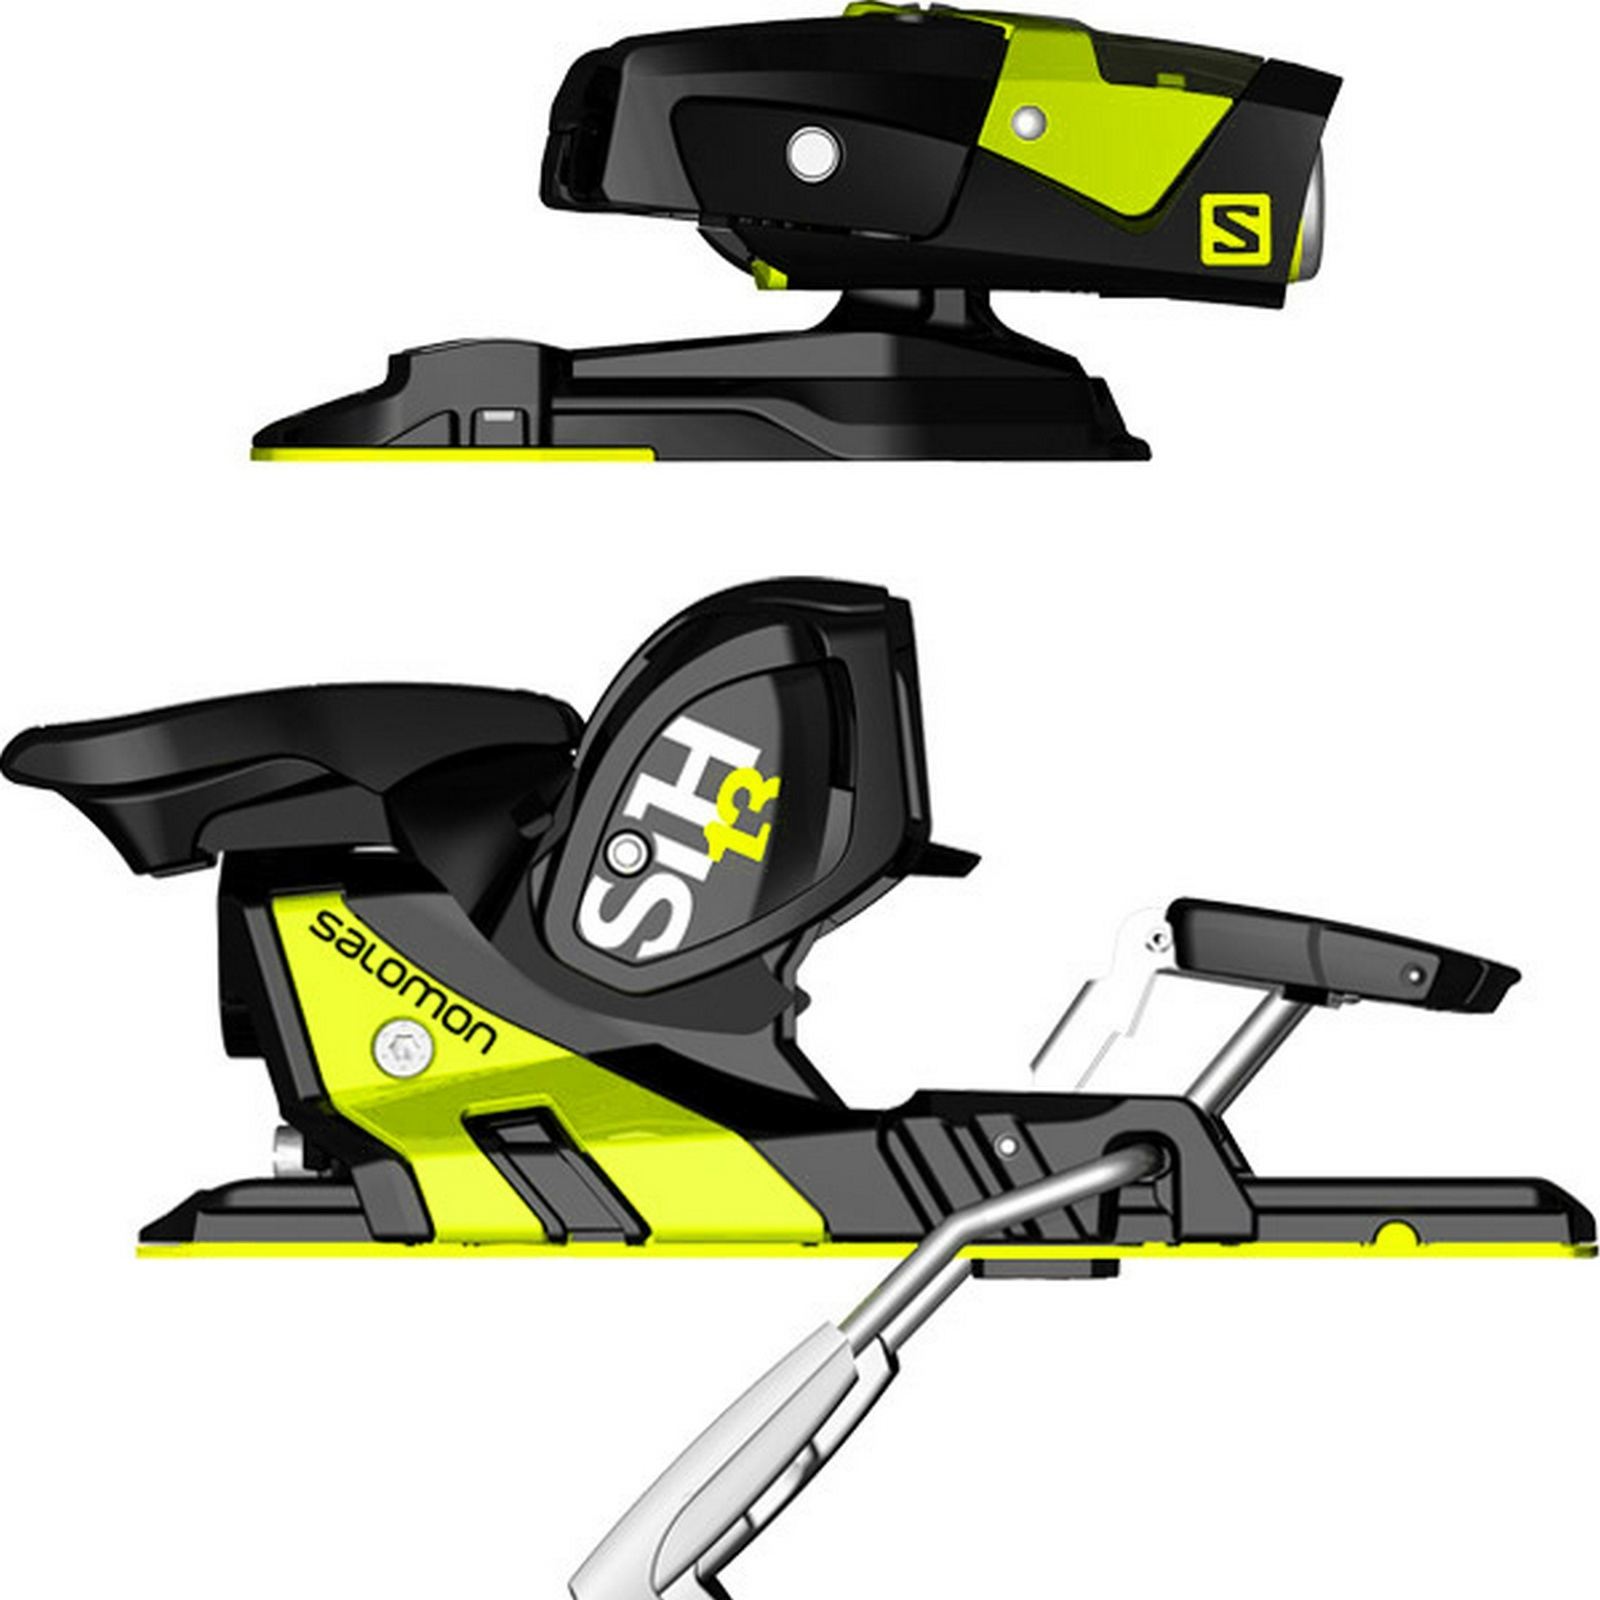 Salomon STH2 13 WTR All-Mountain Ski Binding